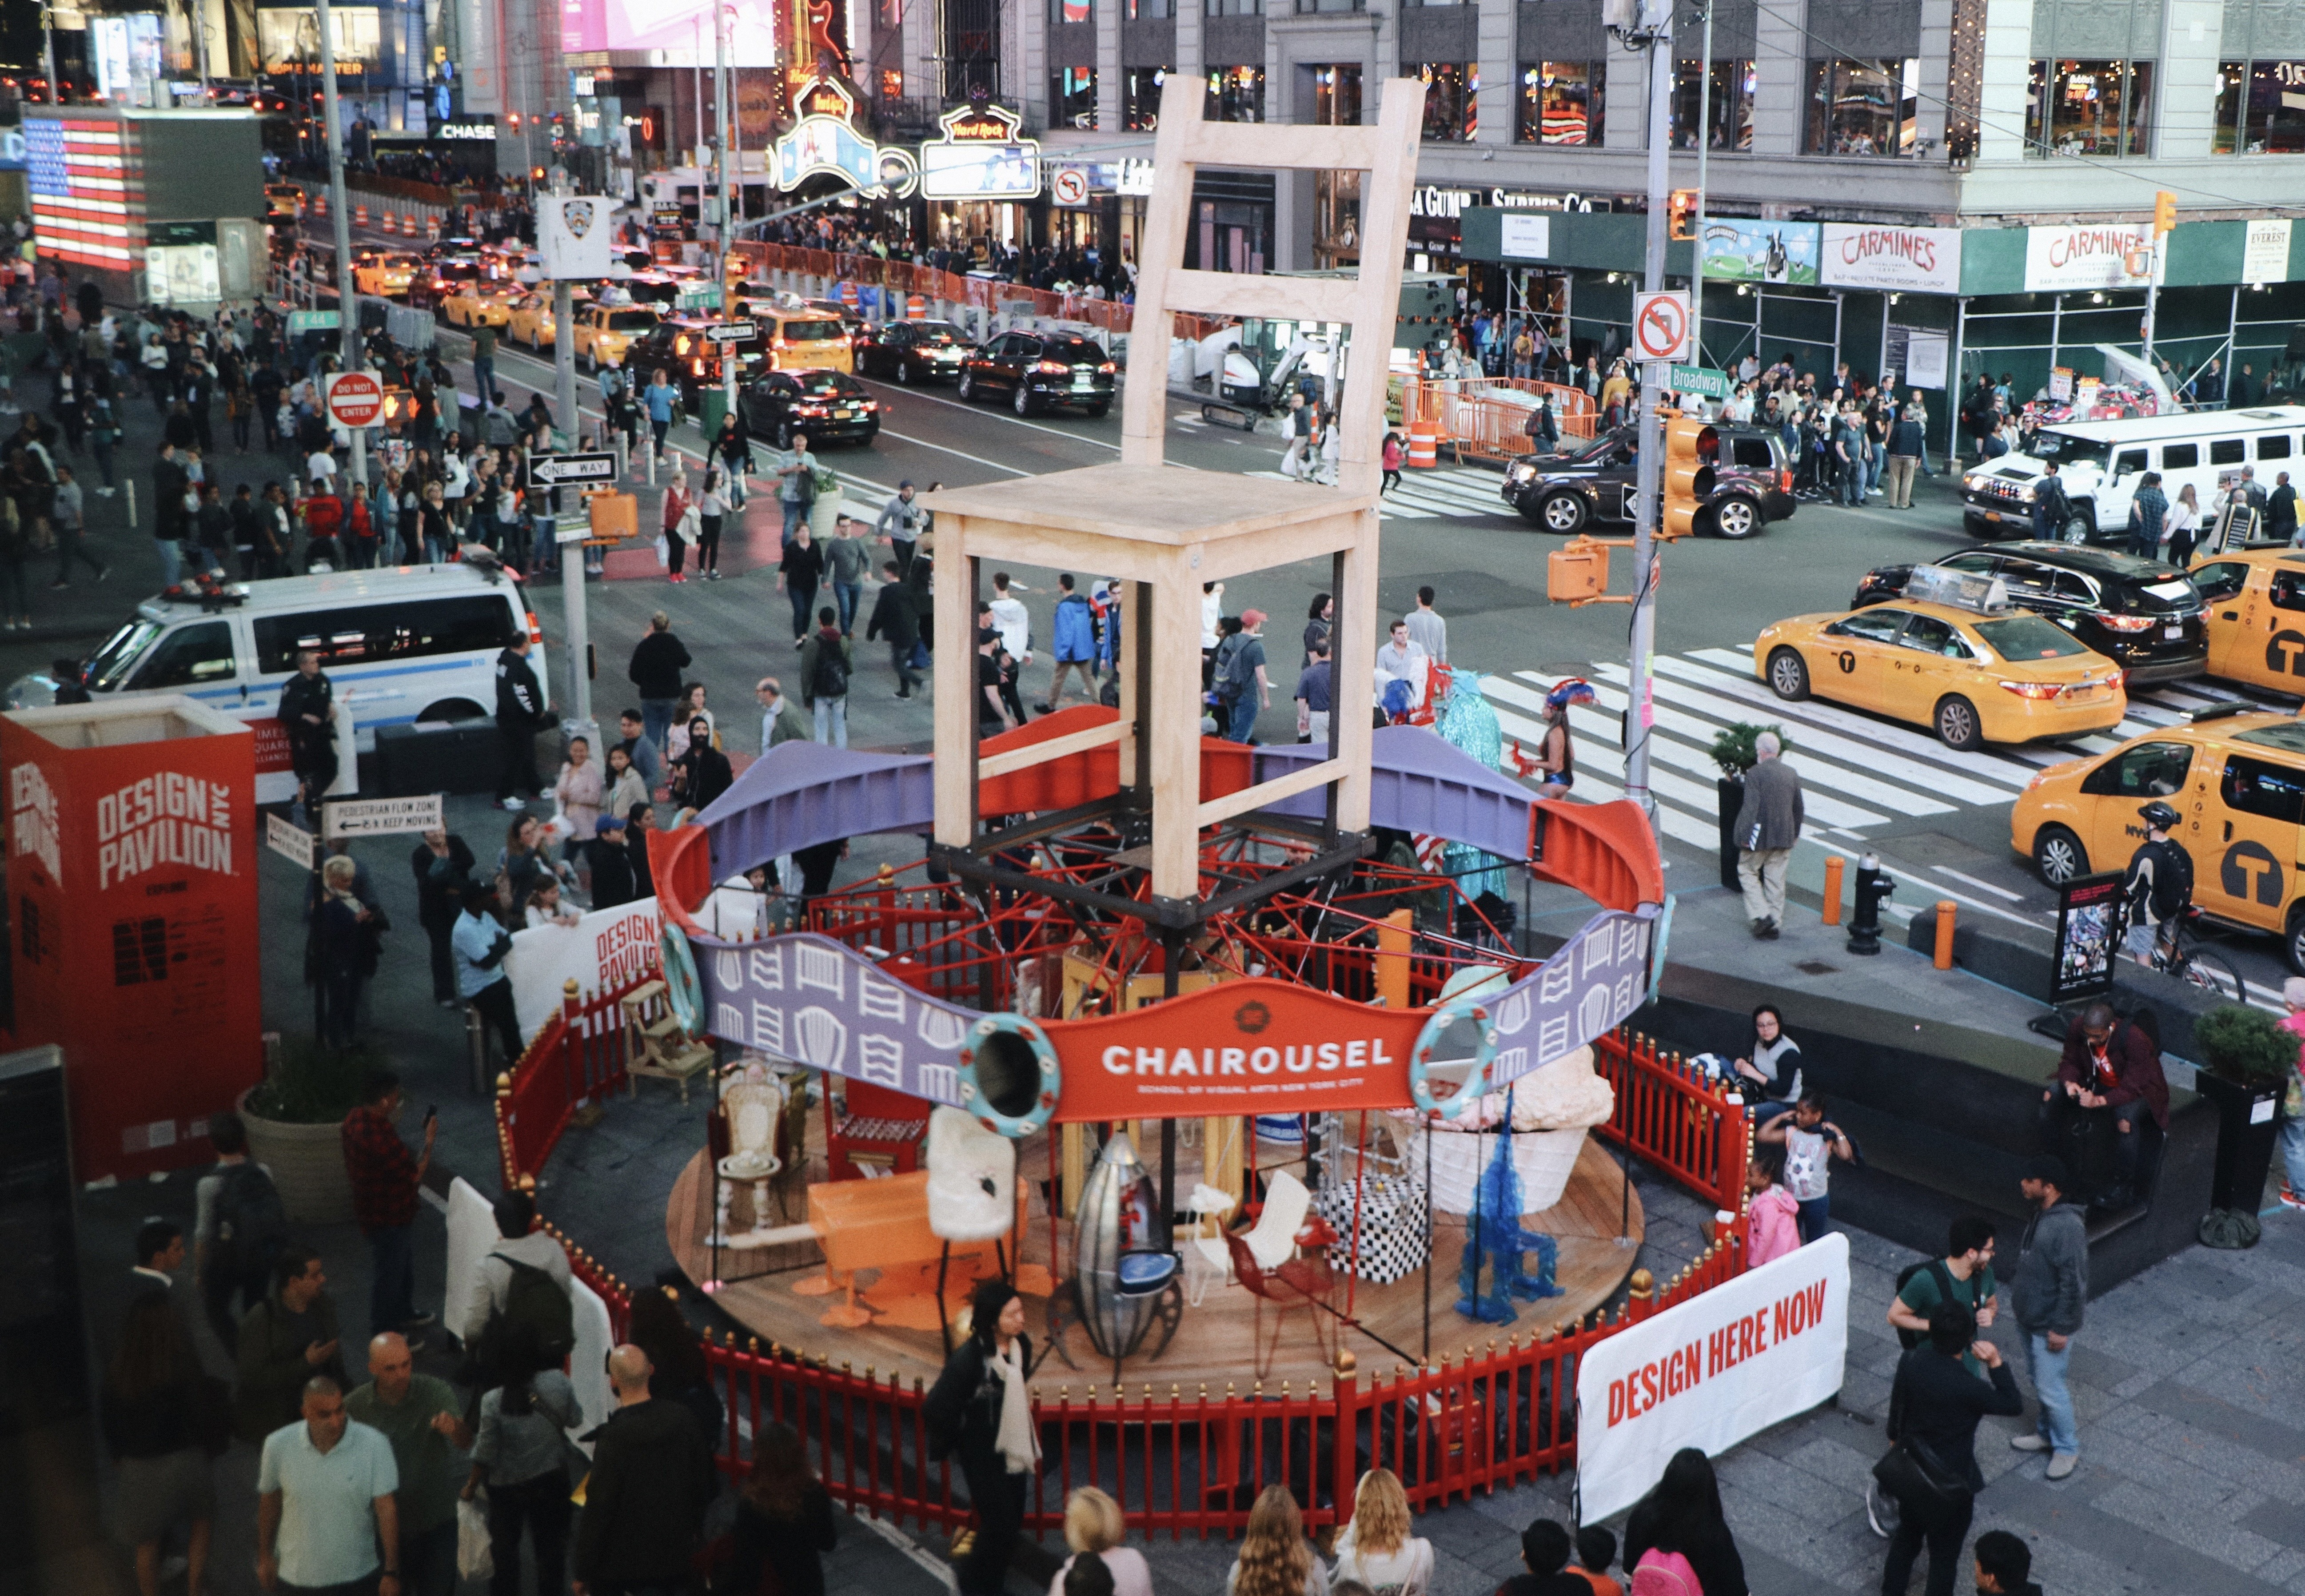 "An image of the new public exhibition of 3D art by students from SVA's BFA Design and BFA Interior Design programs<span class=""redactor-invisible-space"">. ""Chairousel""<span class=""redactor-invisible-space""> is currently up in New York City's Times Square, by Erin Davis.<span class=""redactor-invisible-space""></span></span></span>"